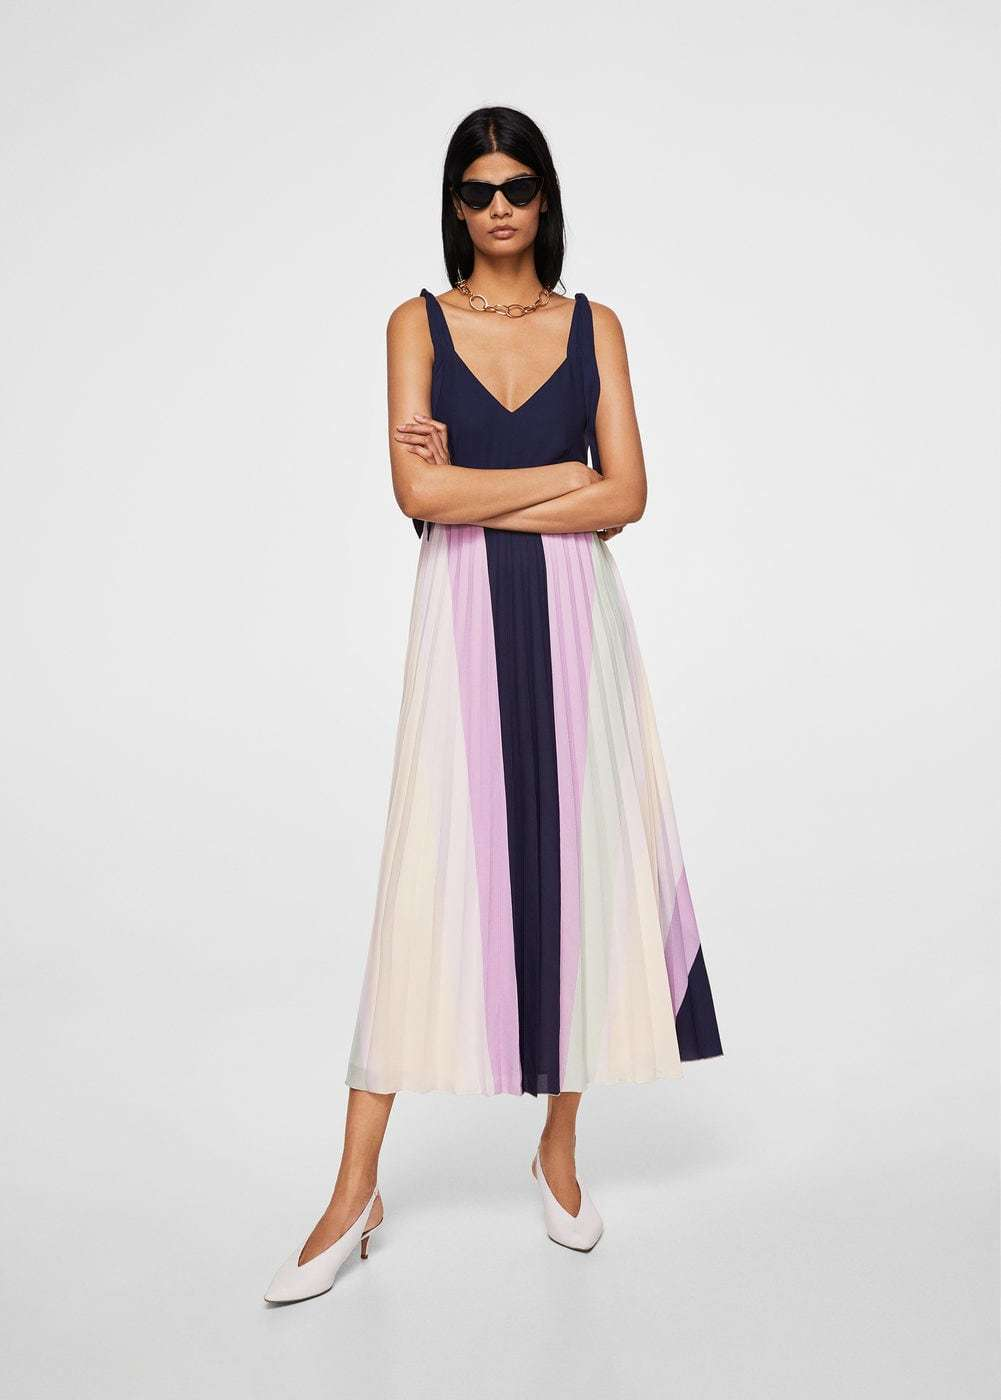 Cute graduation dresses: Sleeveless tie-shoulder midi dress with v-neck and navy blue top with navy blue and pastel lilac, pastel green, and cream-colored pleated skirt